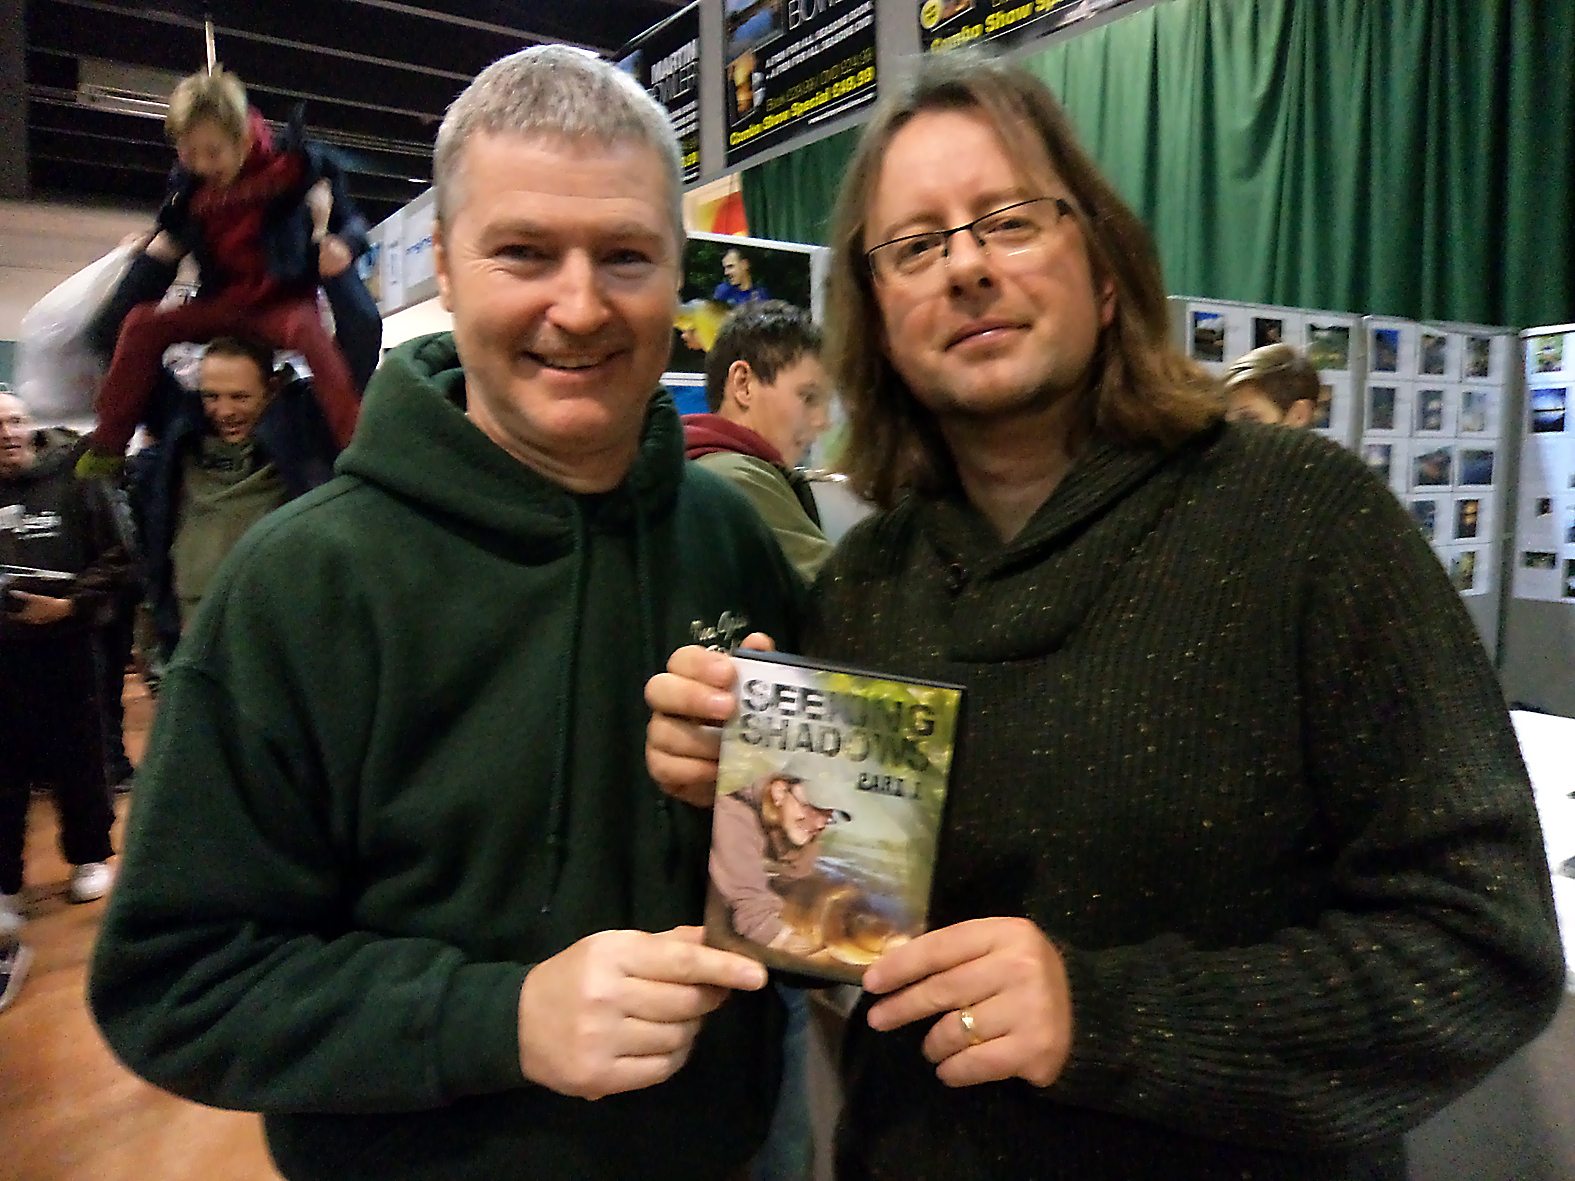 Don't think I have to introduce good friend Martin Bowler... showing off his recent release